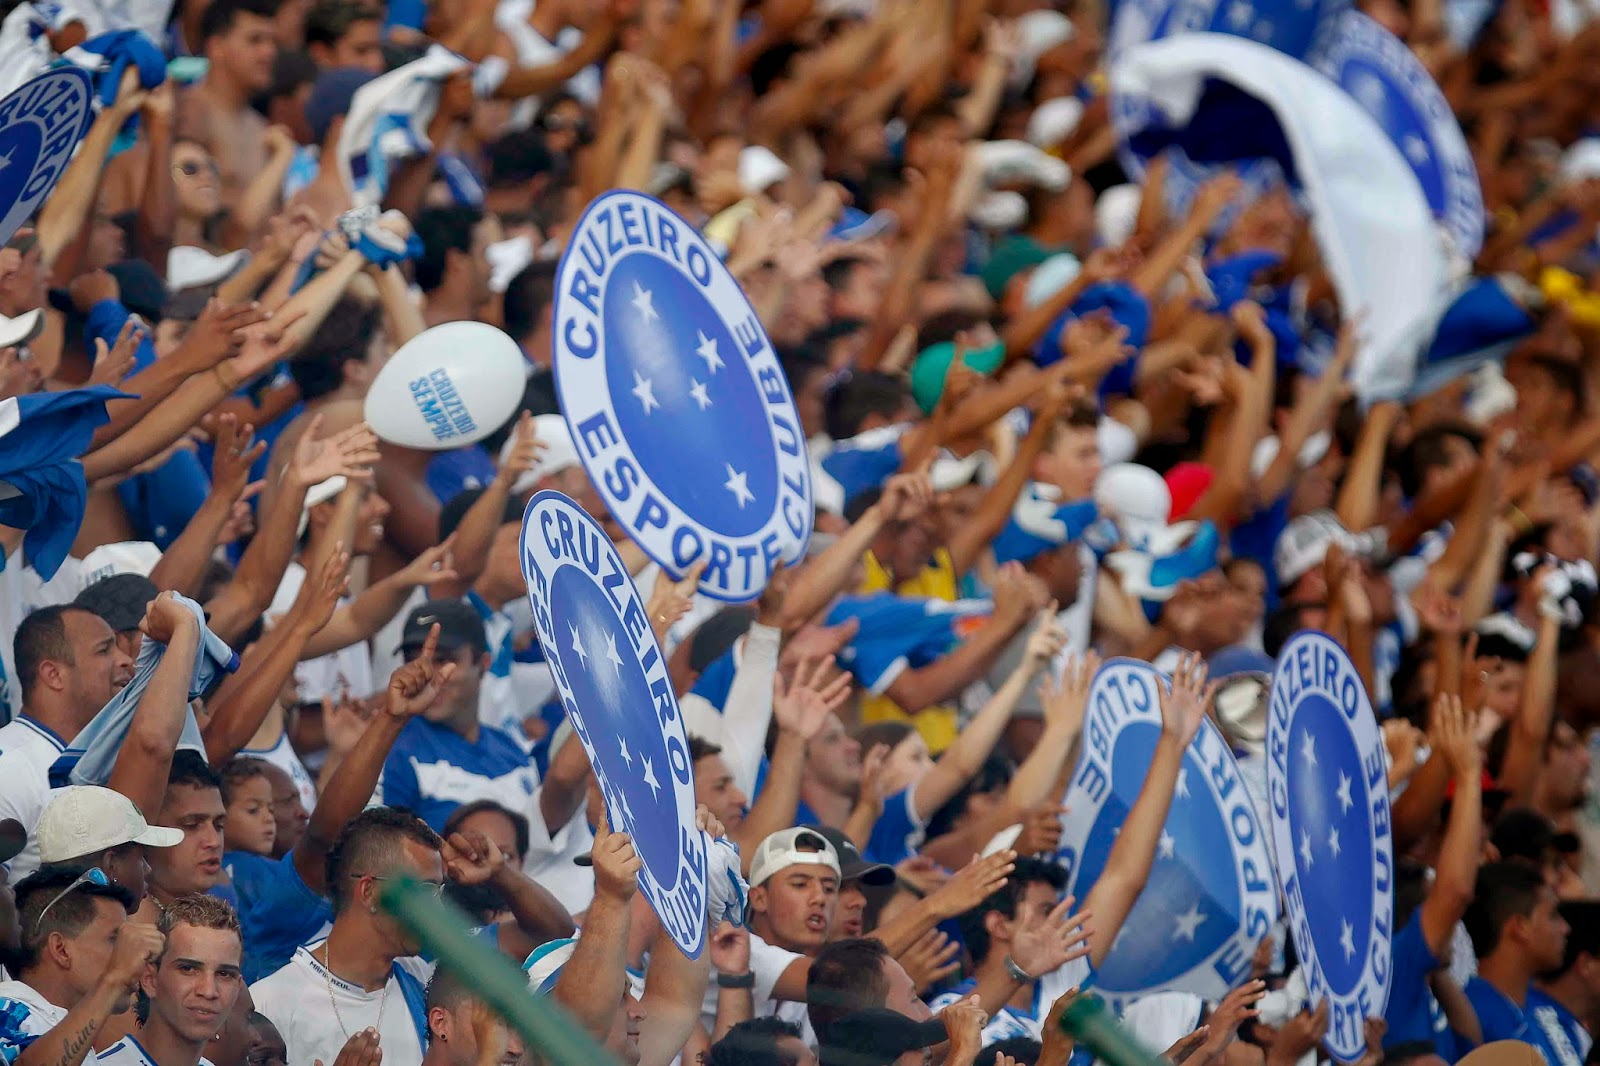 Torcida do Cruzeiro segura o escudo do time